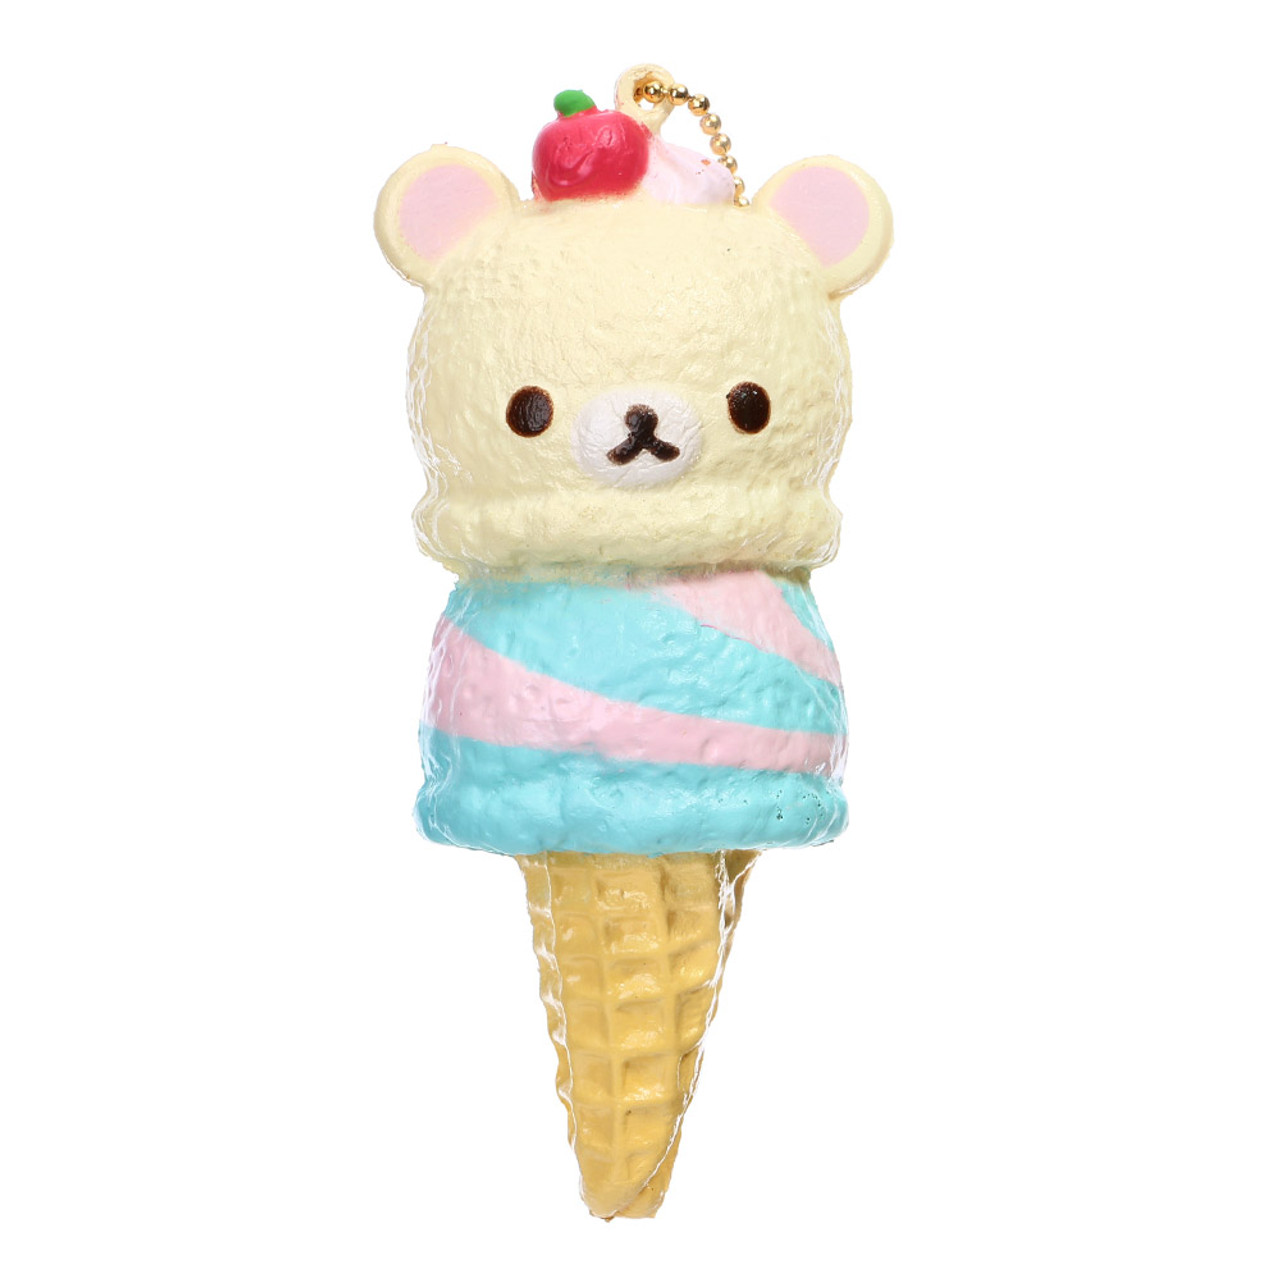 San-x Korilakkuma Berry Mint Double Ice-cream Squishy Charms ( Front View )